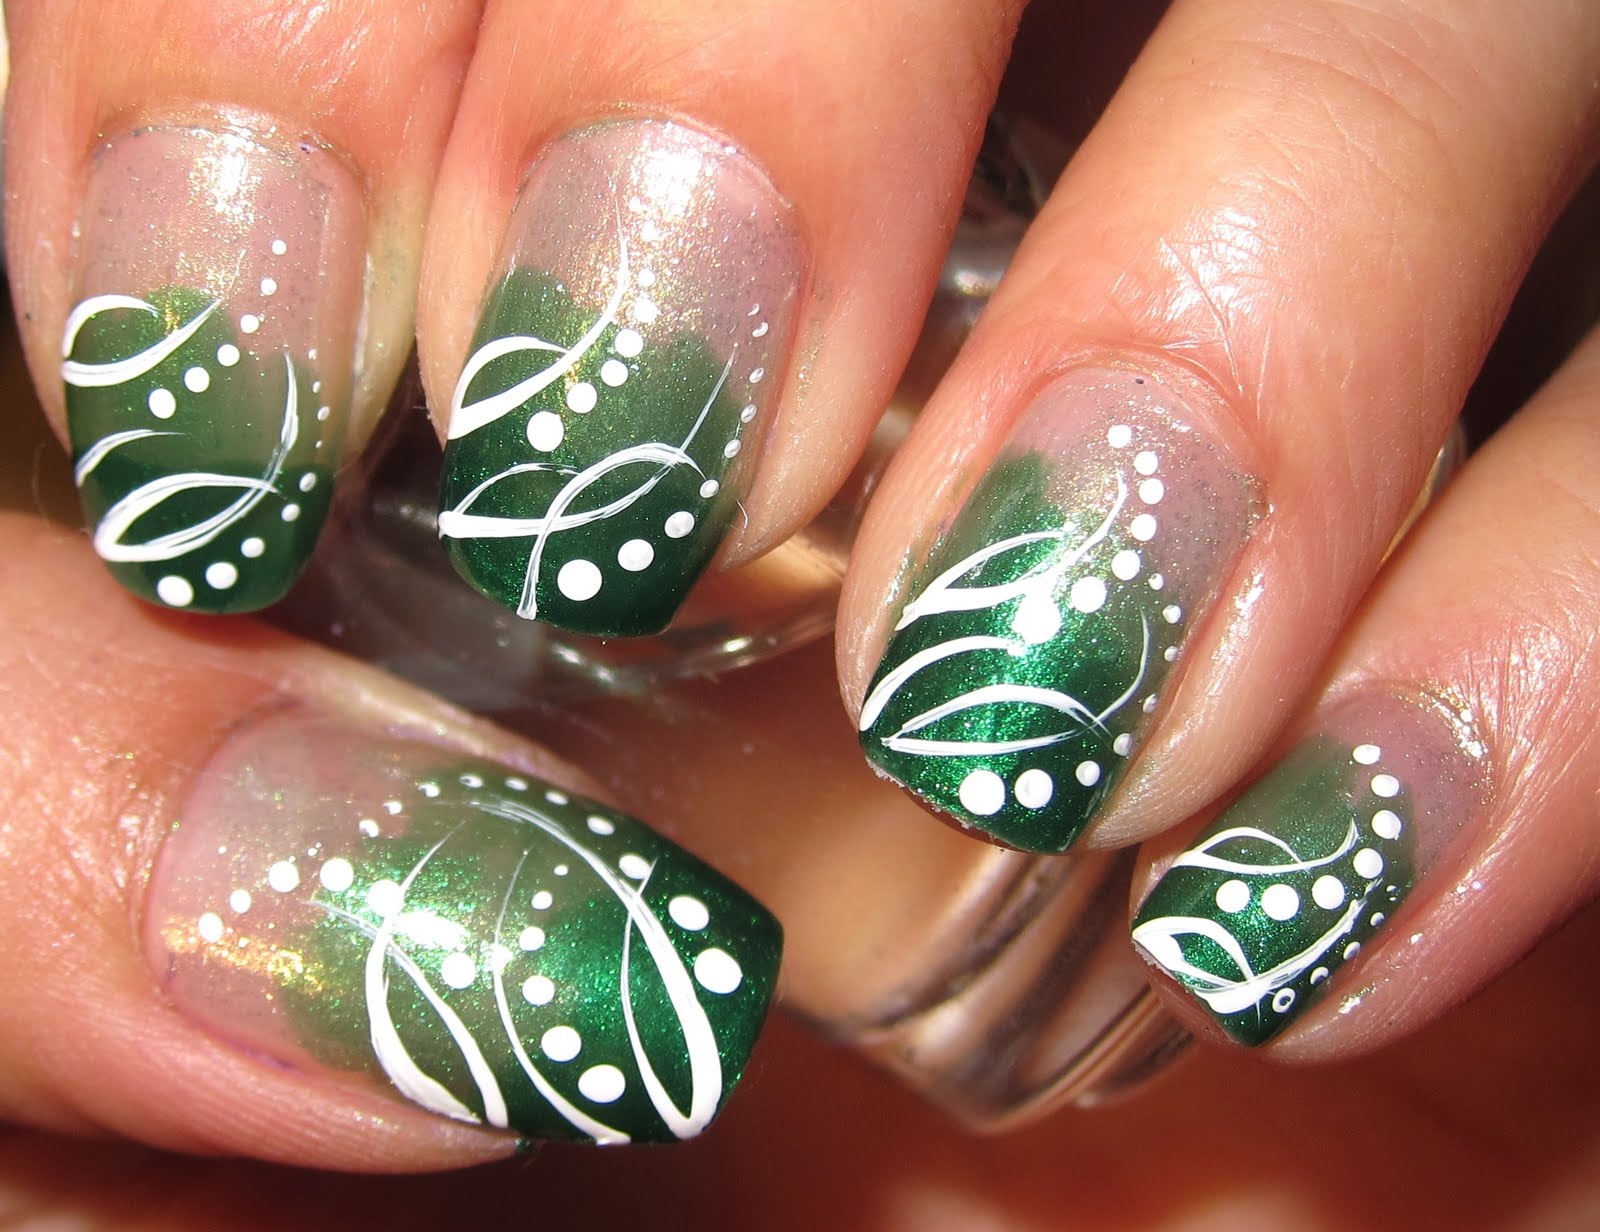 Nail Designs With Lines And Dots#*^